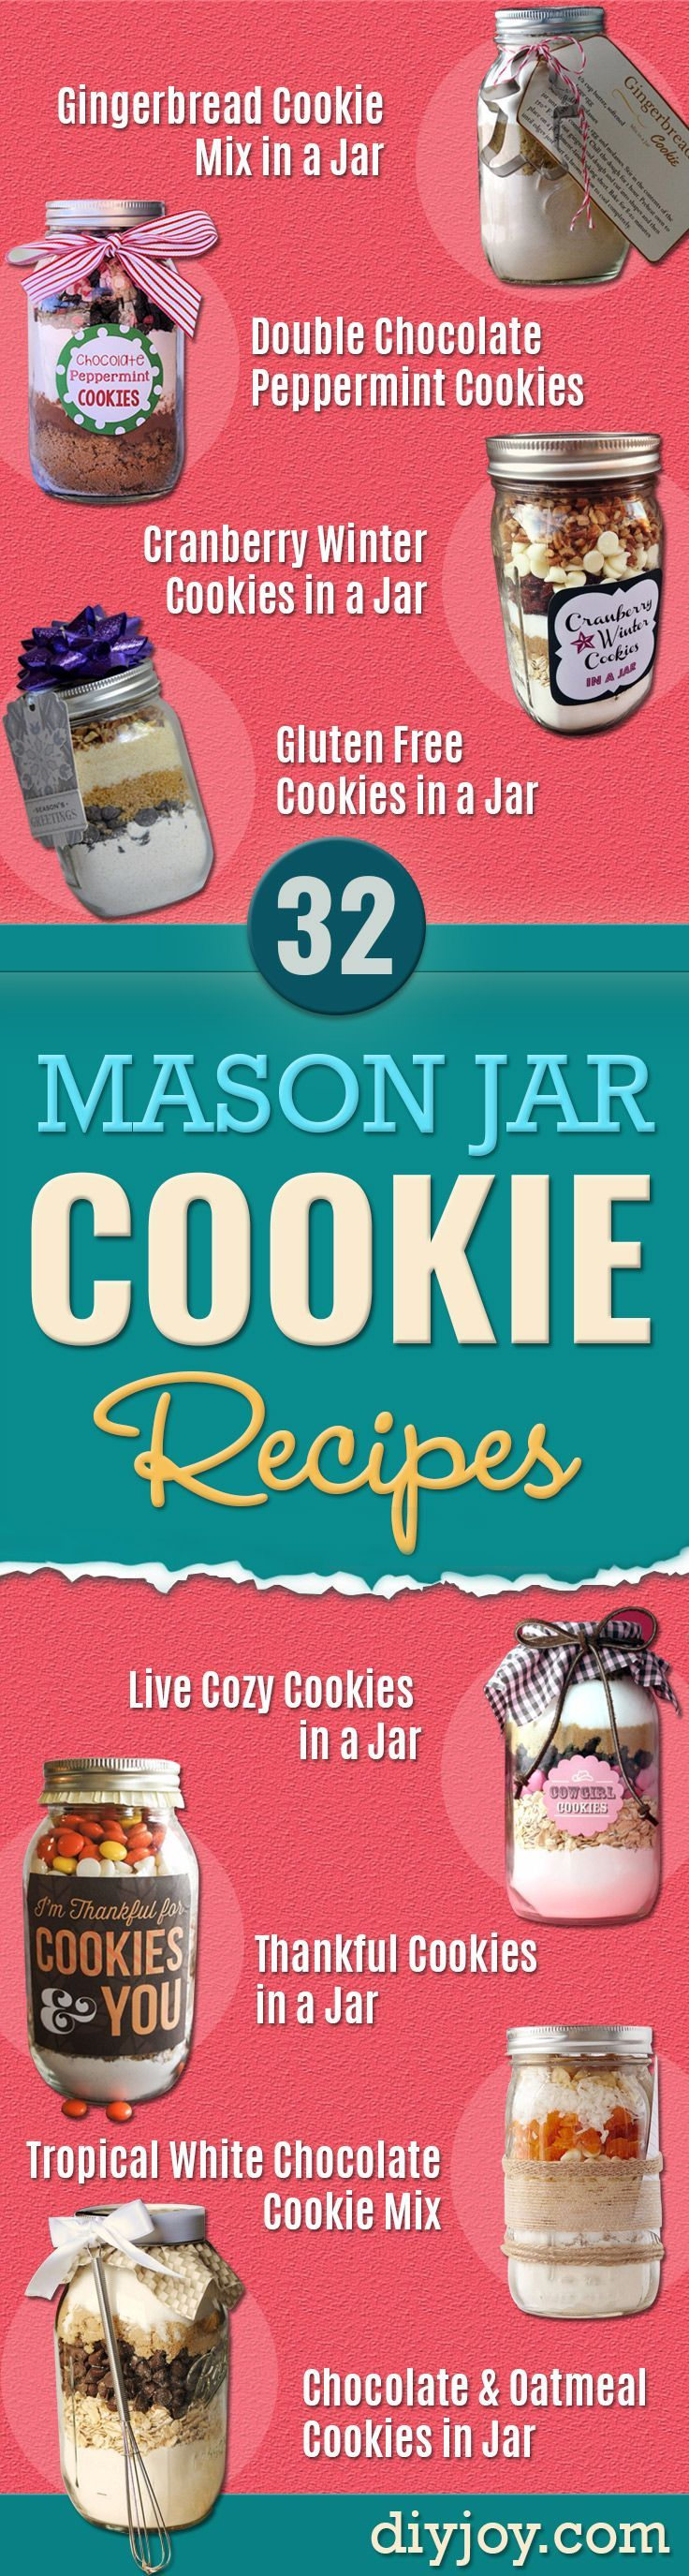 Best Mason Jar Cookies - Mason Jar Cookie Recipe Mix for Cute Decorated DIY Gifts - Easy Chocolate Chip Recipes, Christmas Presents and Wedding Favors in Mason Jars - Fun Ideas for DIY Parties and Cheap LAst Mintue Gift Ideas for Friends, Family and Neigh